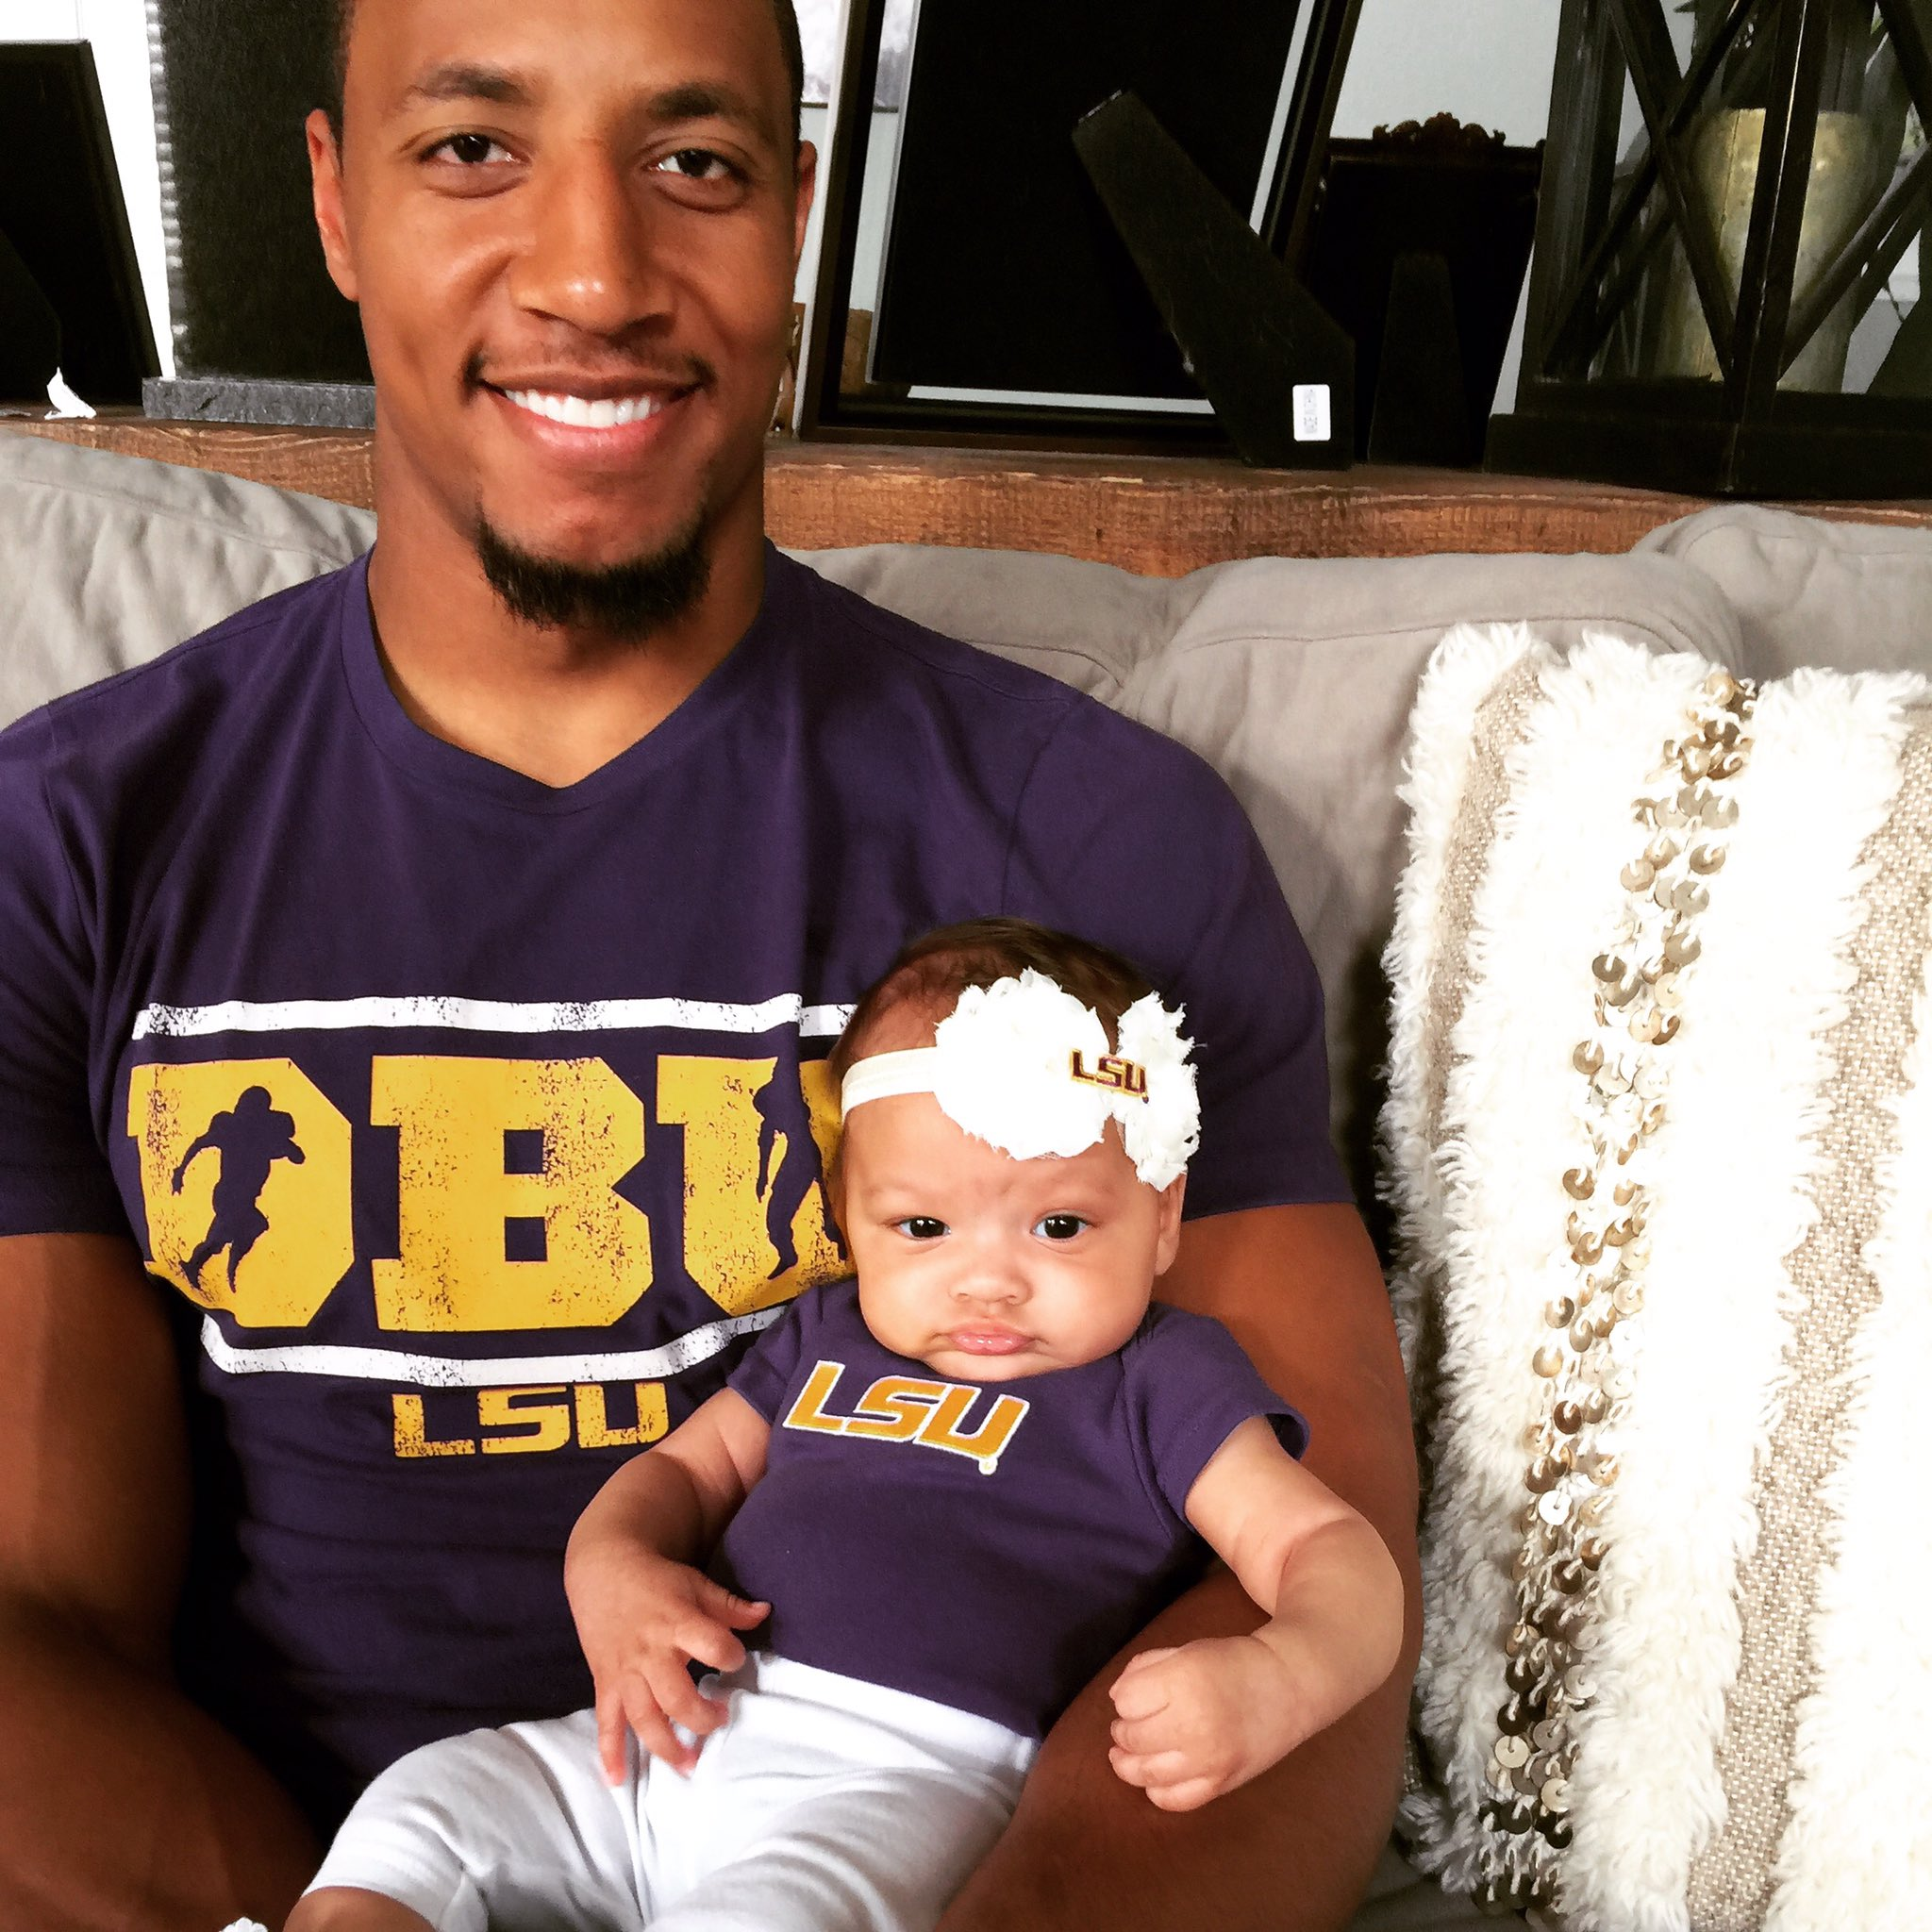 Ready for the game! #GEAUXTigers #BeatBama shoutout to @IAMCweb for the #DBU shirt https://t.co/TyVpTTKdyn